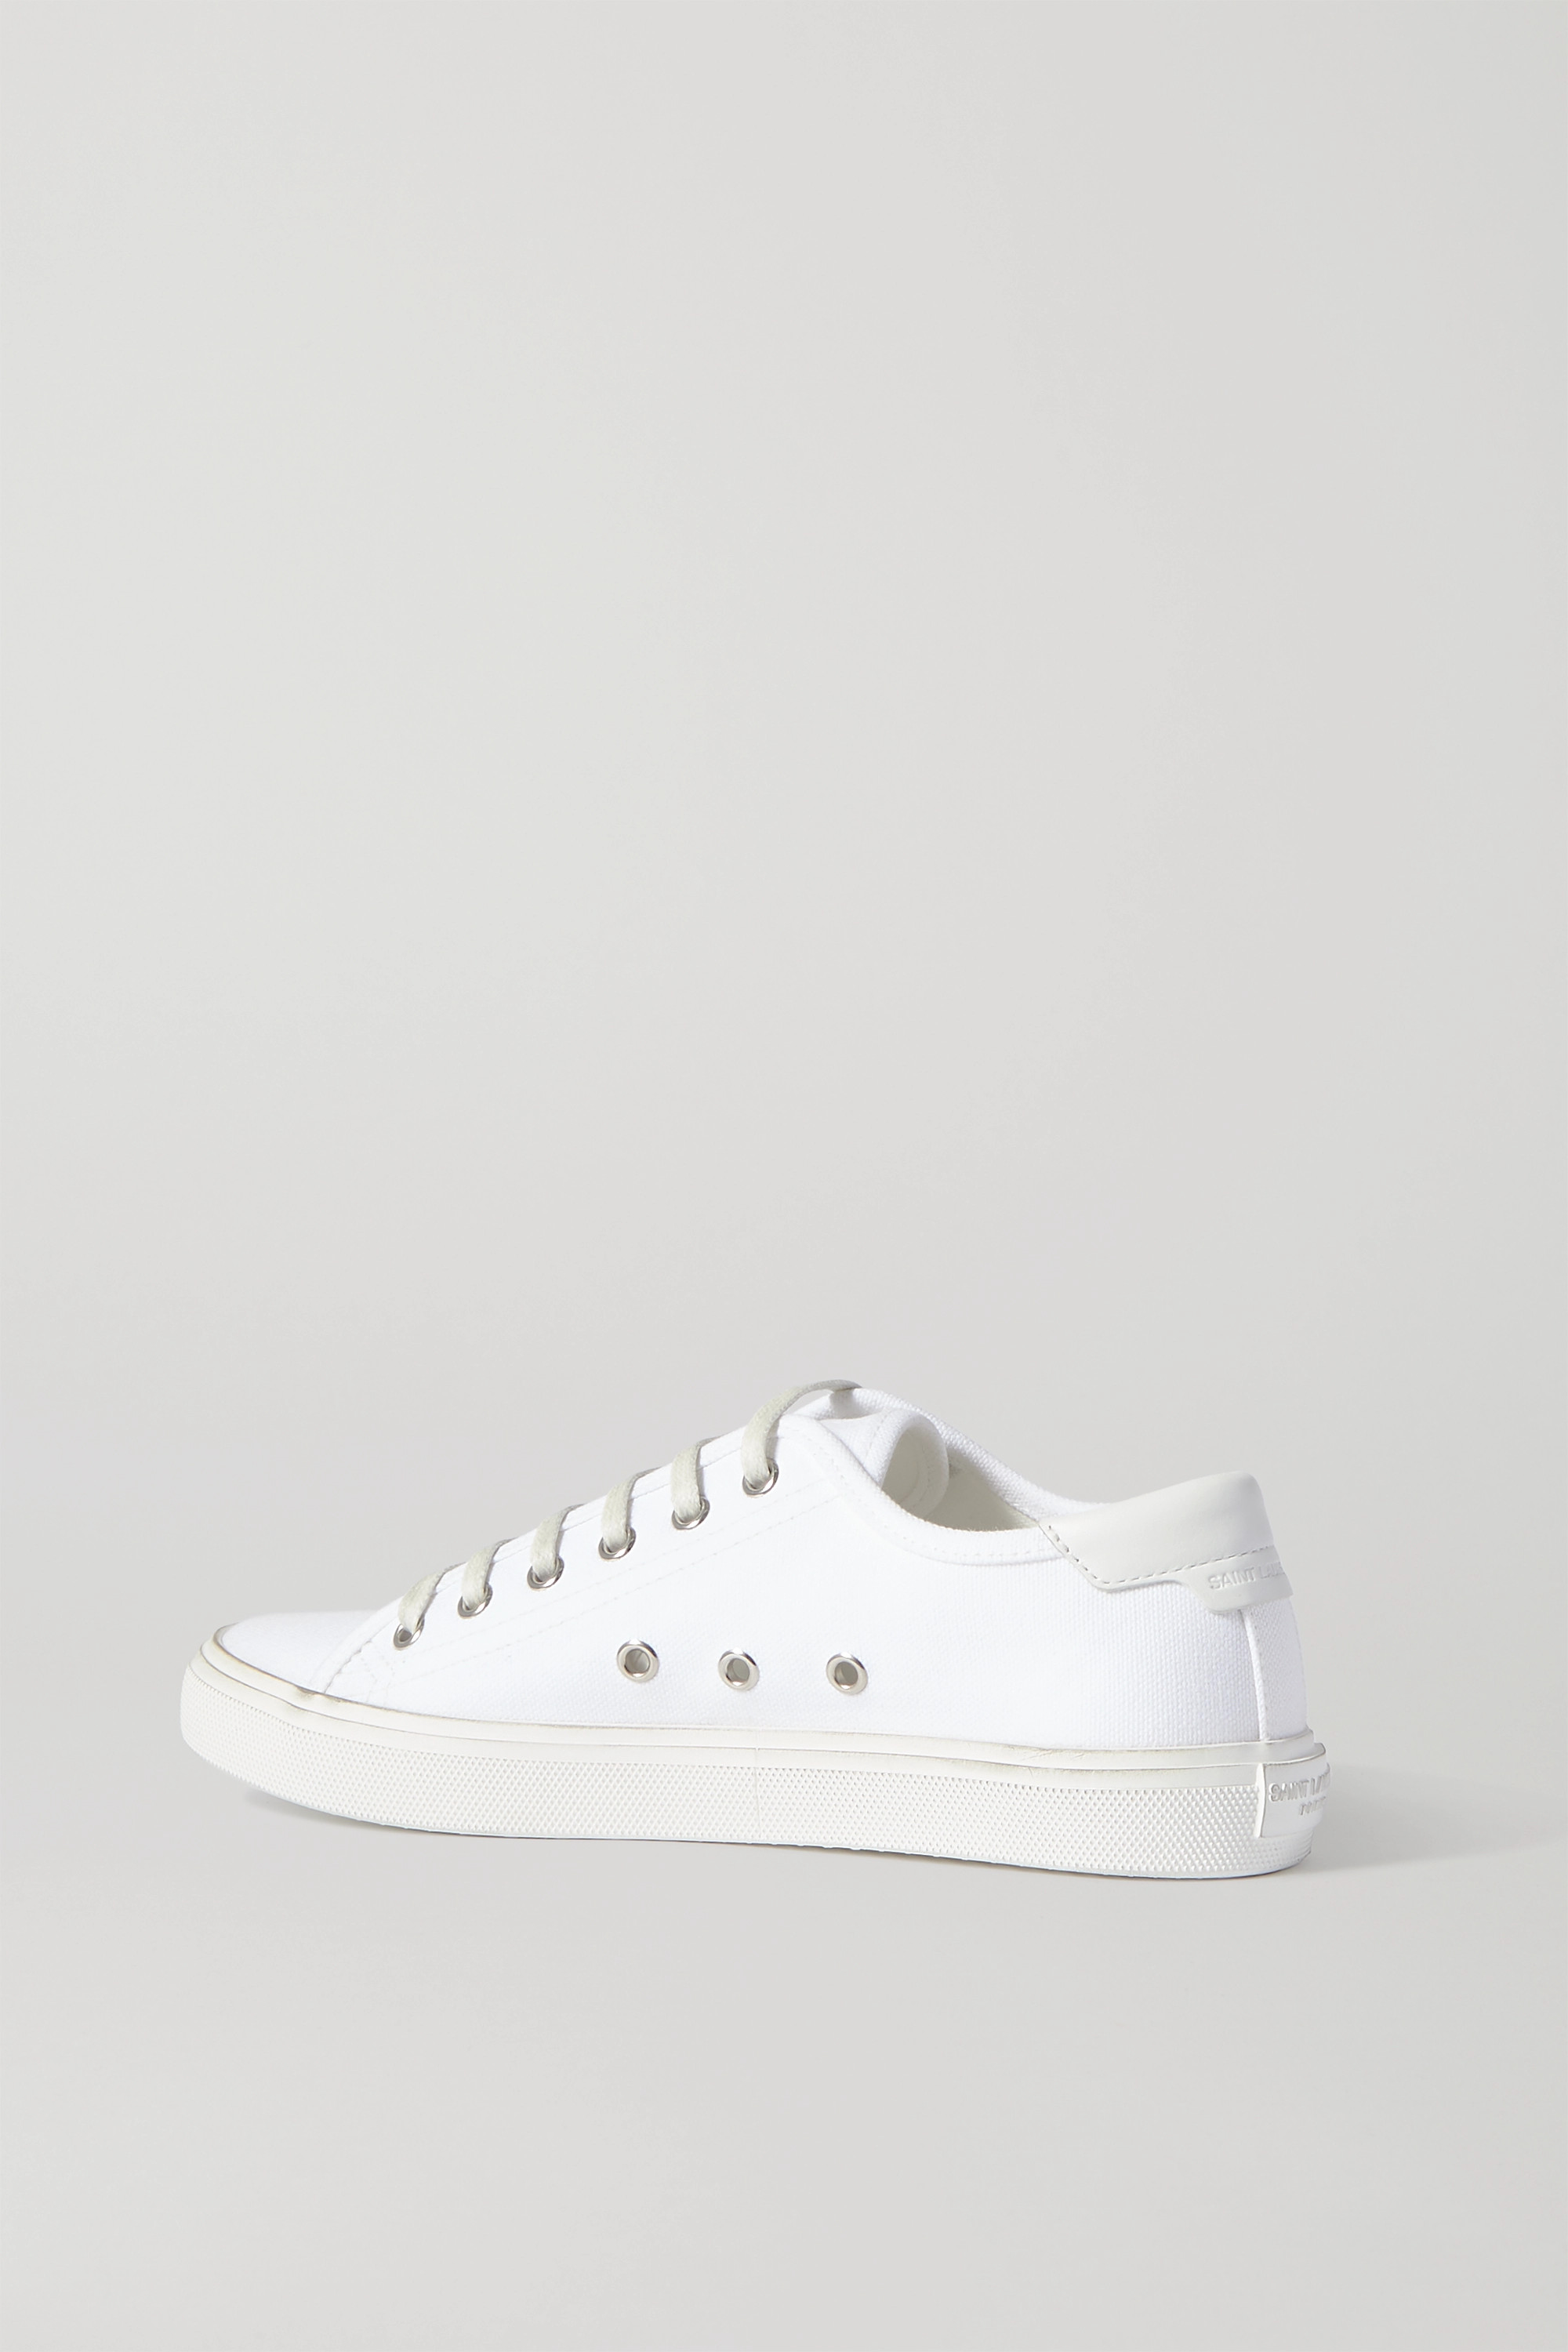 SAINT LAURENT Malibu leather-trimmed distressed cotton-canvas sneakers